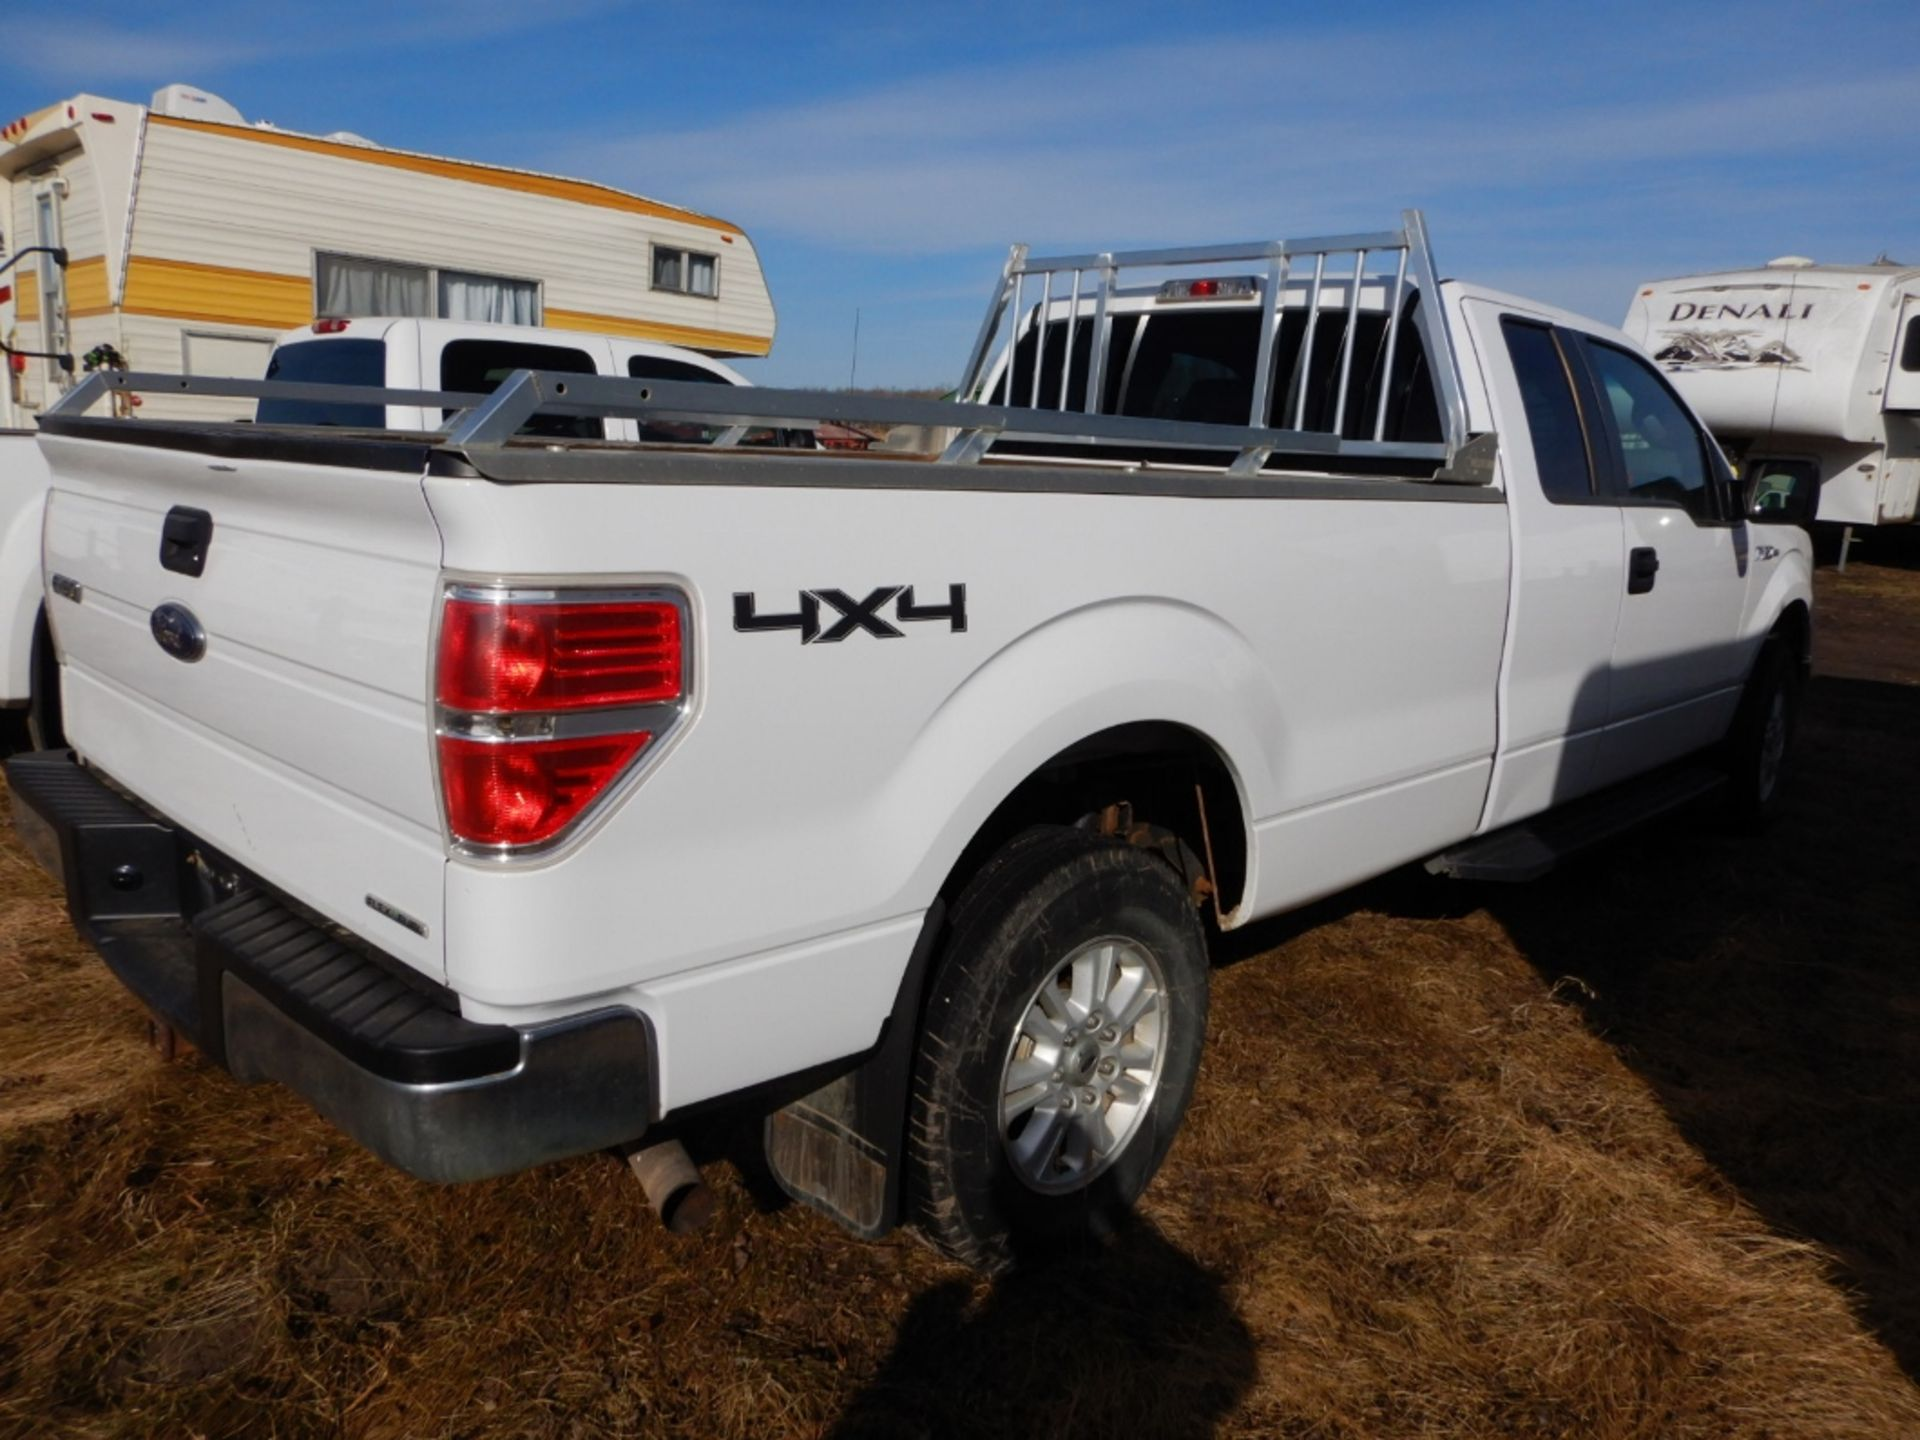 06/2014 FORD F150 XLT 4X4 EXTENDED CAB LONG BOX PICKUP W/BOX RAILS & HEAD ACHE RACK, AT, V8-GAS S/ - Image 3 of 7